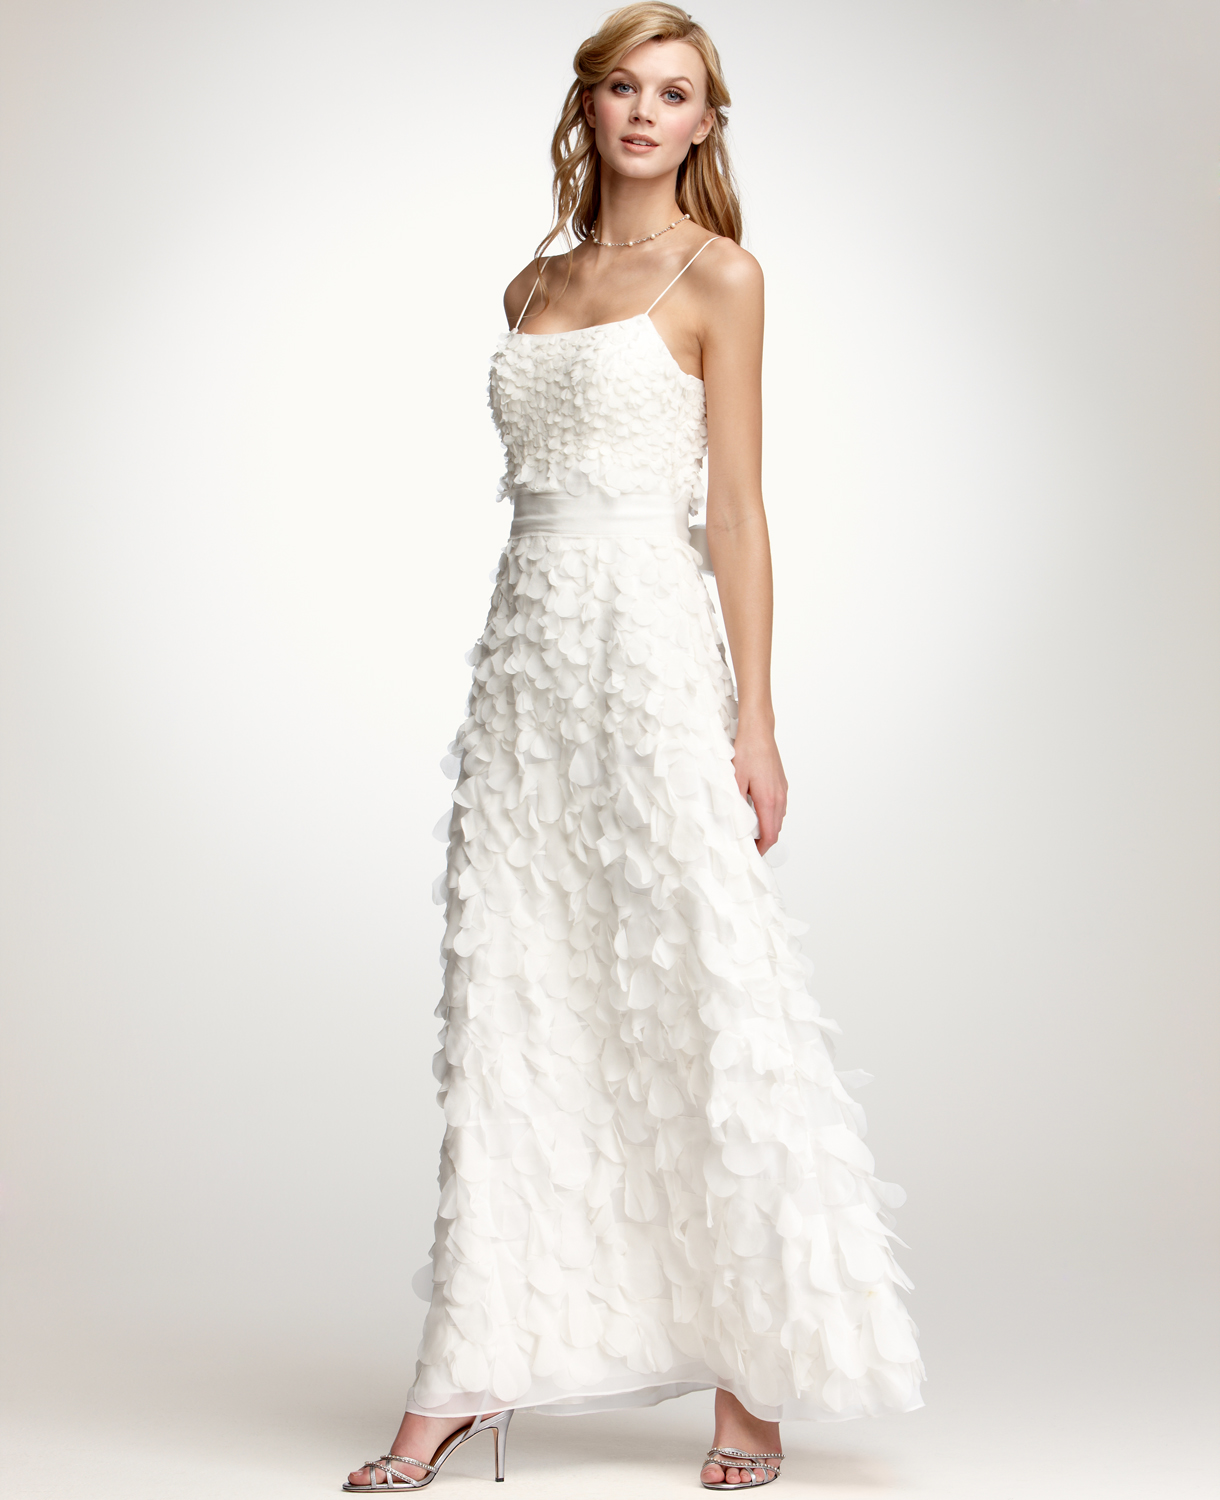 5d4f74270456 Chic summer bridal gowns